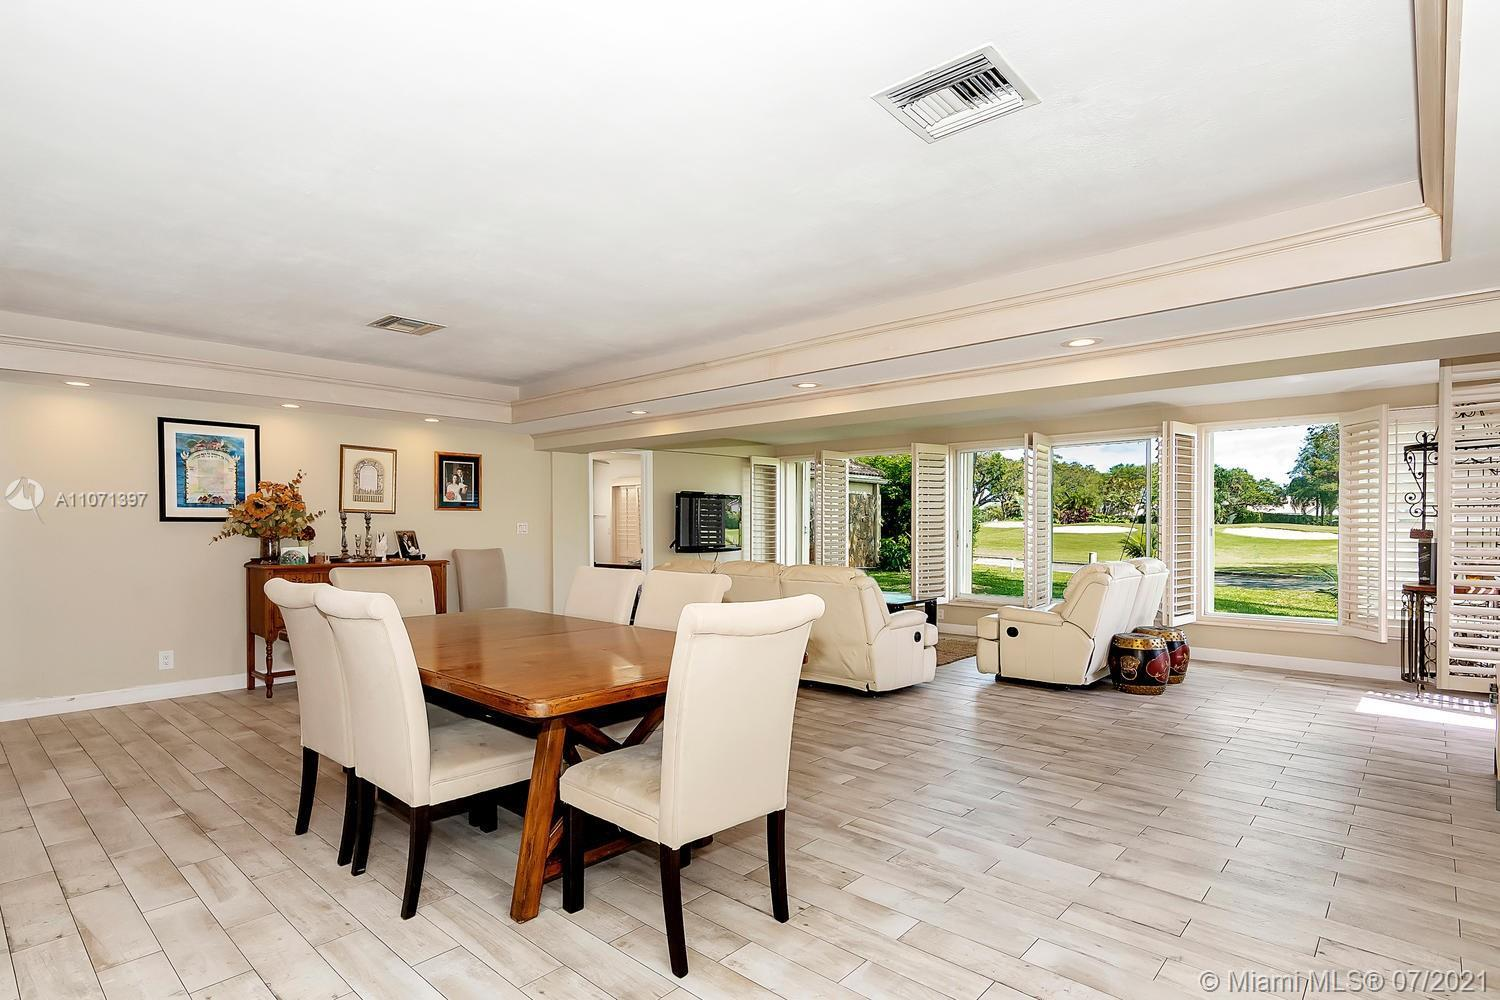 Welcome to this stunning Golf Course Villa surrounded by gracious, mature oak trees. This home will